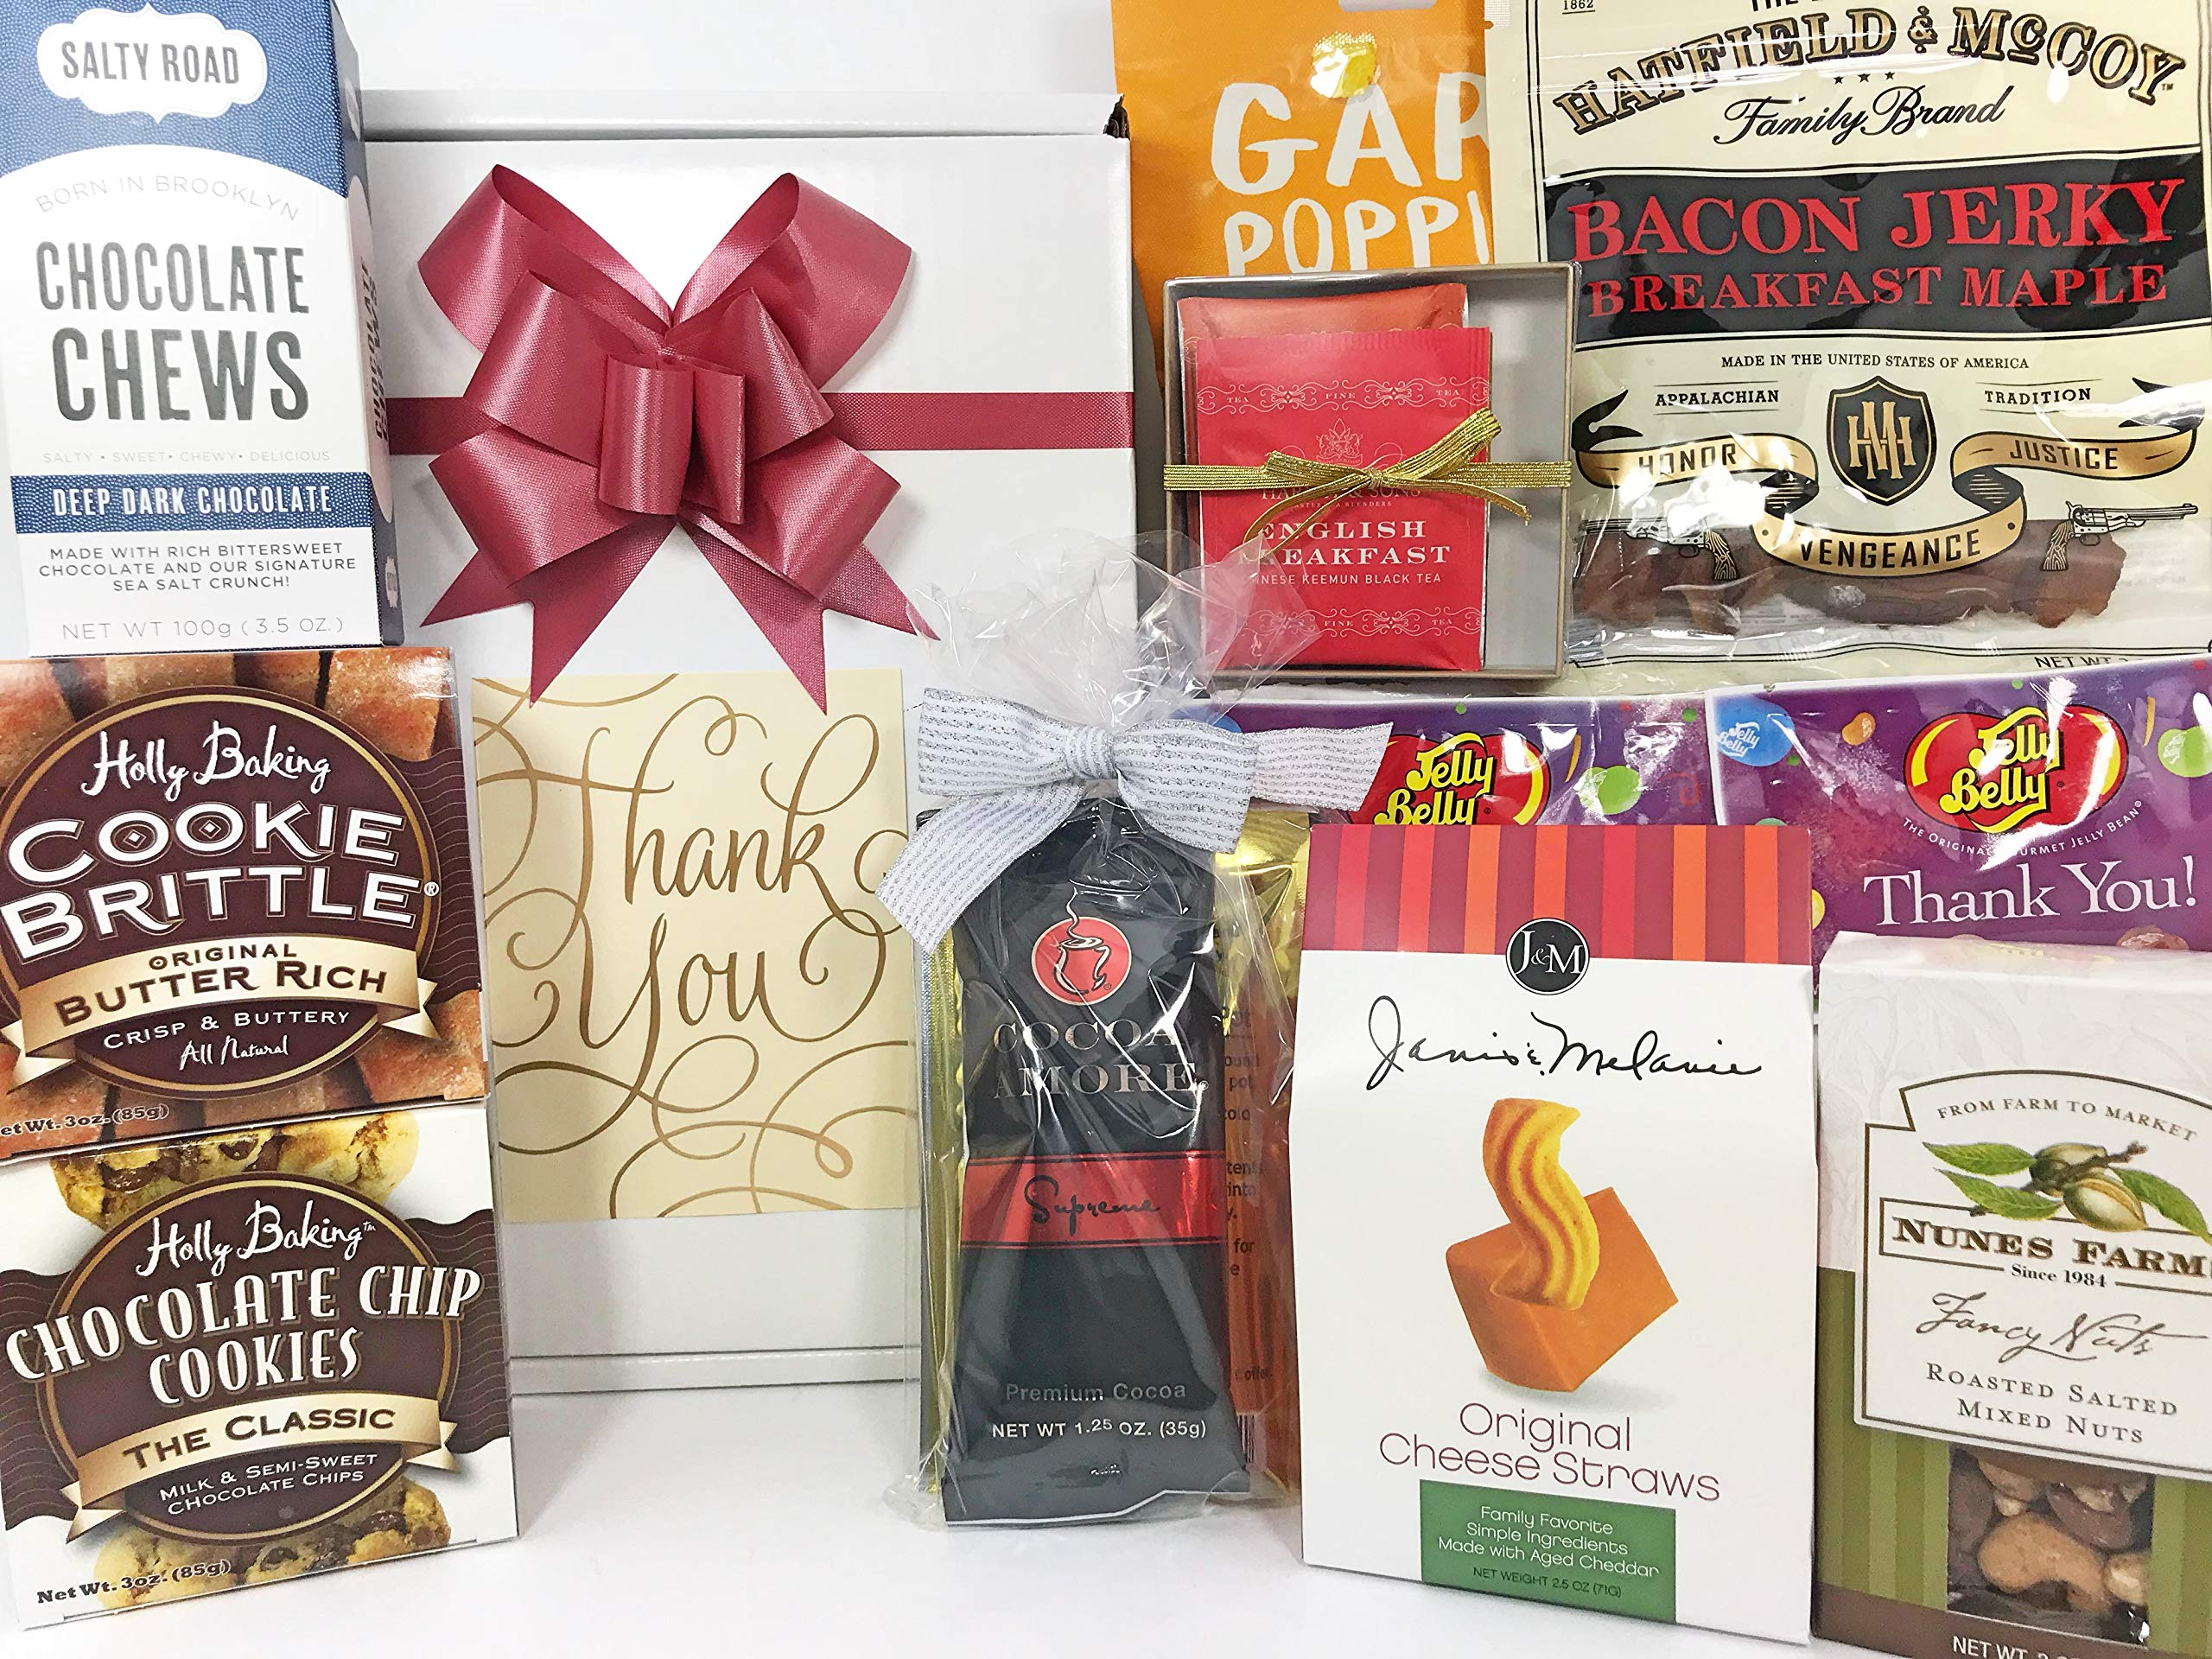 Thank You Gift Box Basket - Treats are Always Better Than Cards! - Perfect Gift For Real Estate Closings Clients Businesses Offices Friends Neighbors Family Women and Men Prime by Specialty Gift Boxes